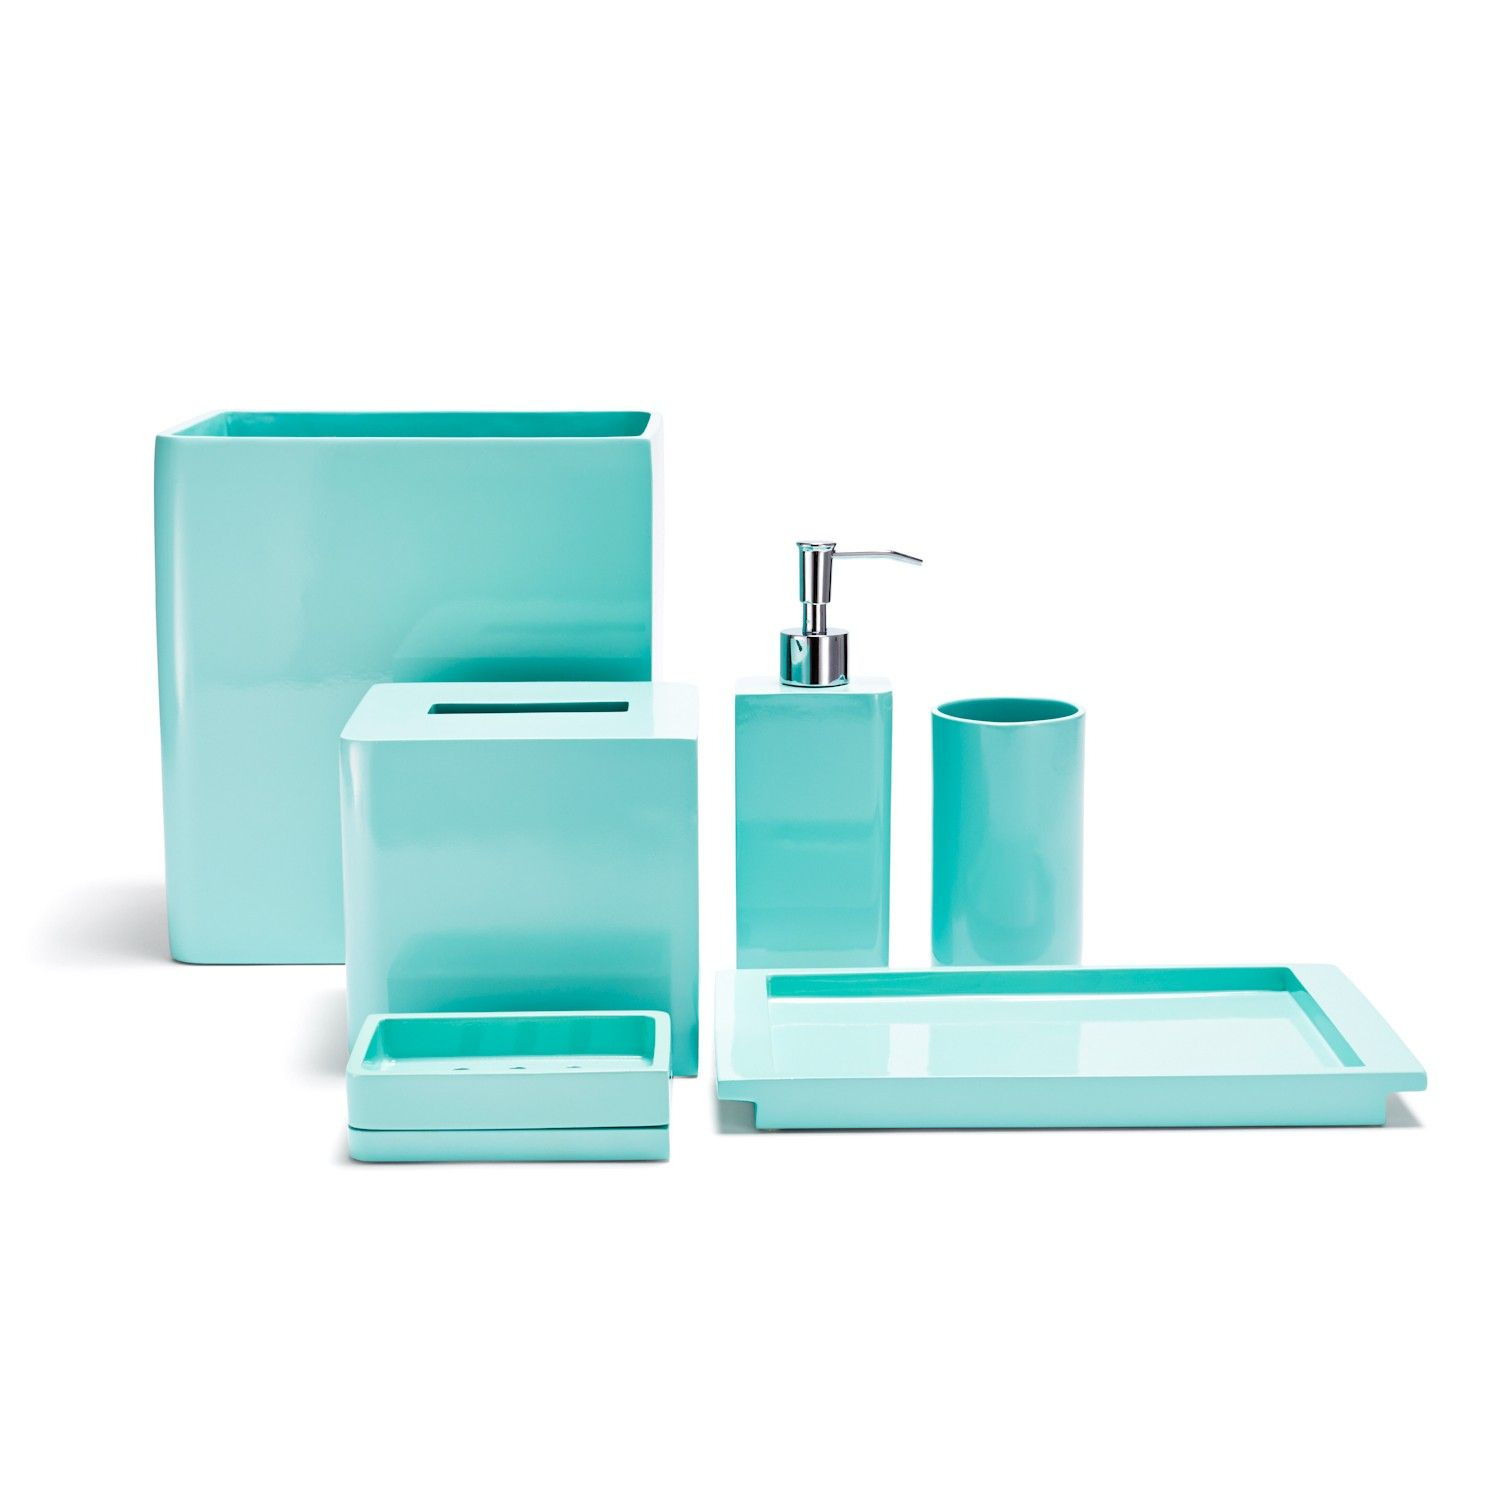 Aqua Blue Bathroom Accessories Of Bathroom Accessories In Blue Ideas Pinterest